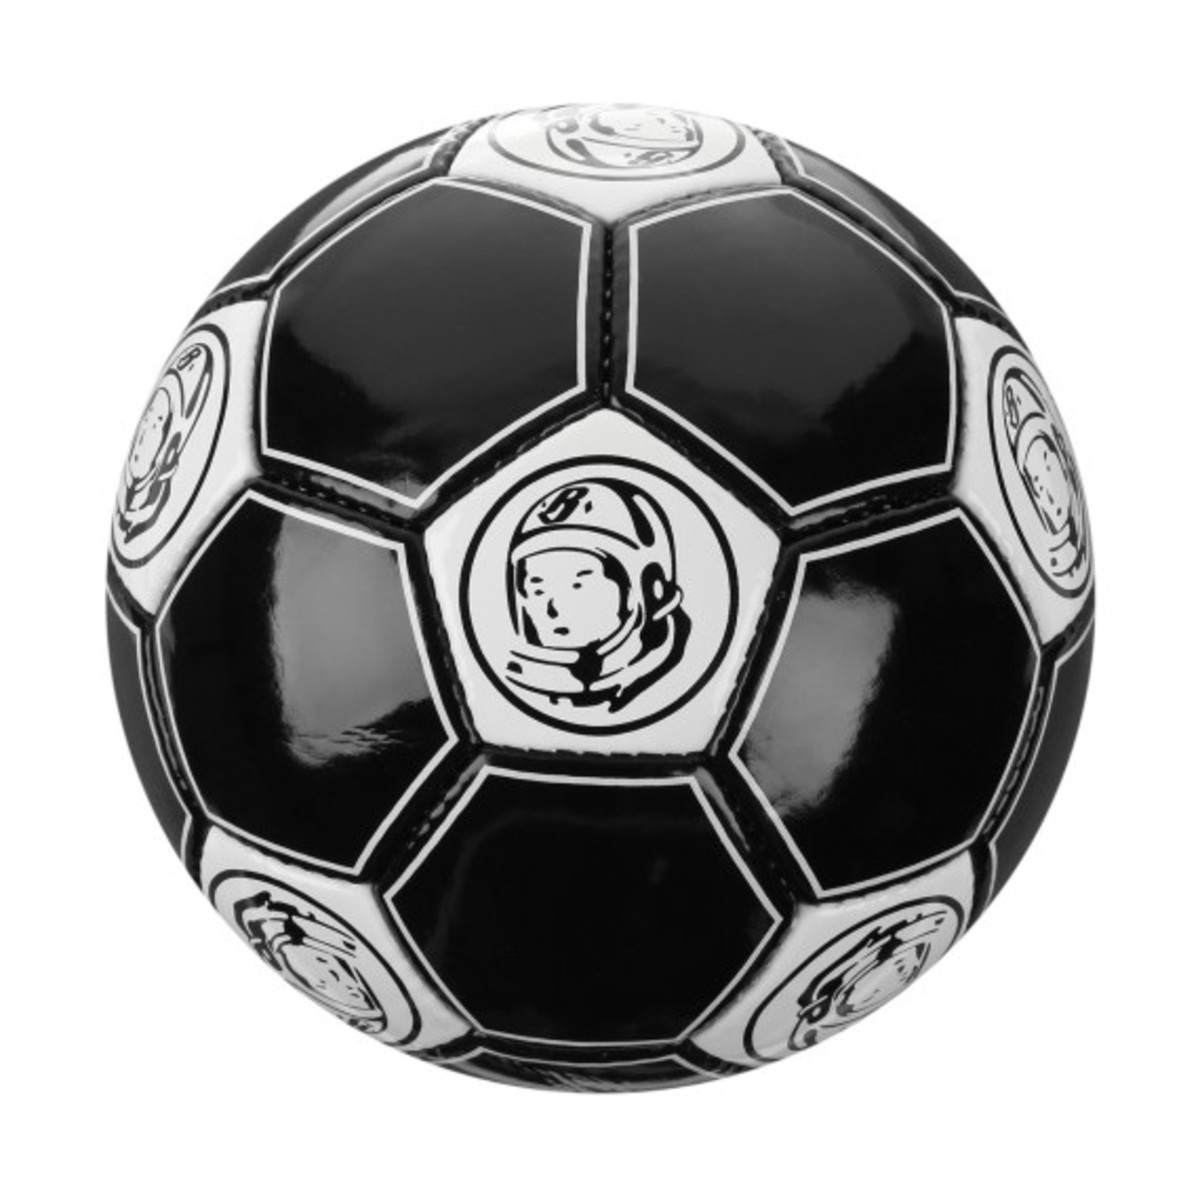 billionaire-boys-club-soccer-ball-06